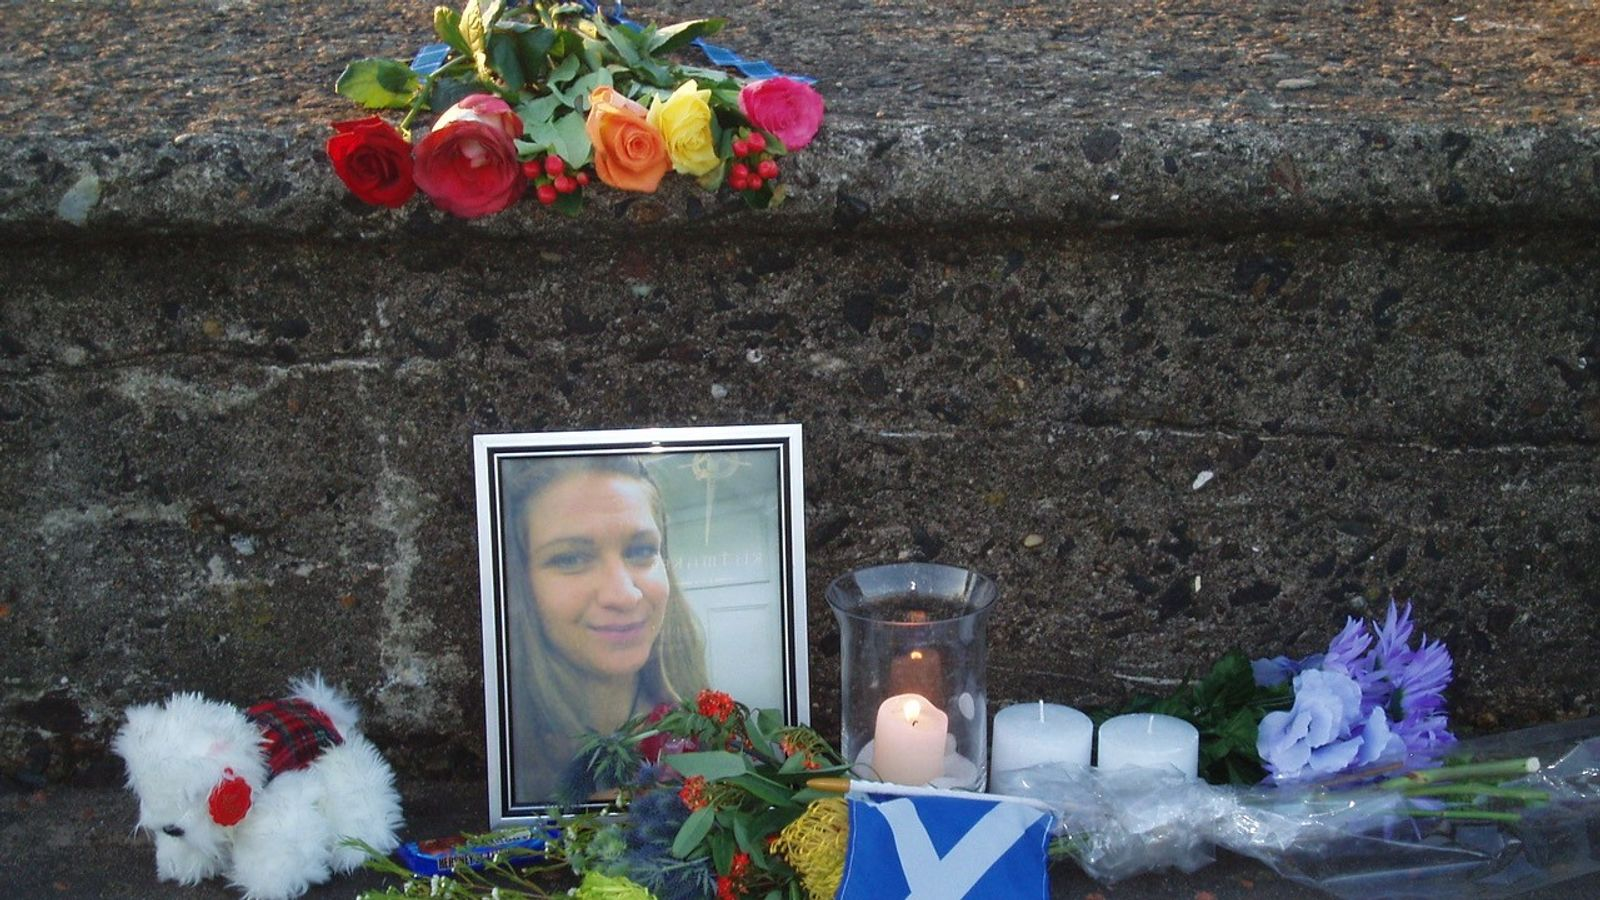 Annie Borjesson: Mystery death files classified as secret, says Sweden